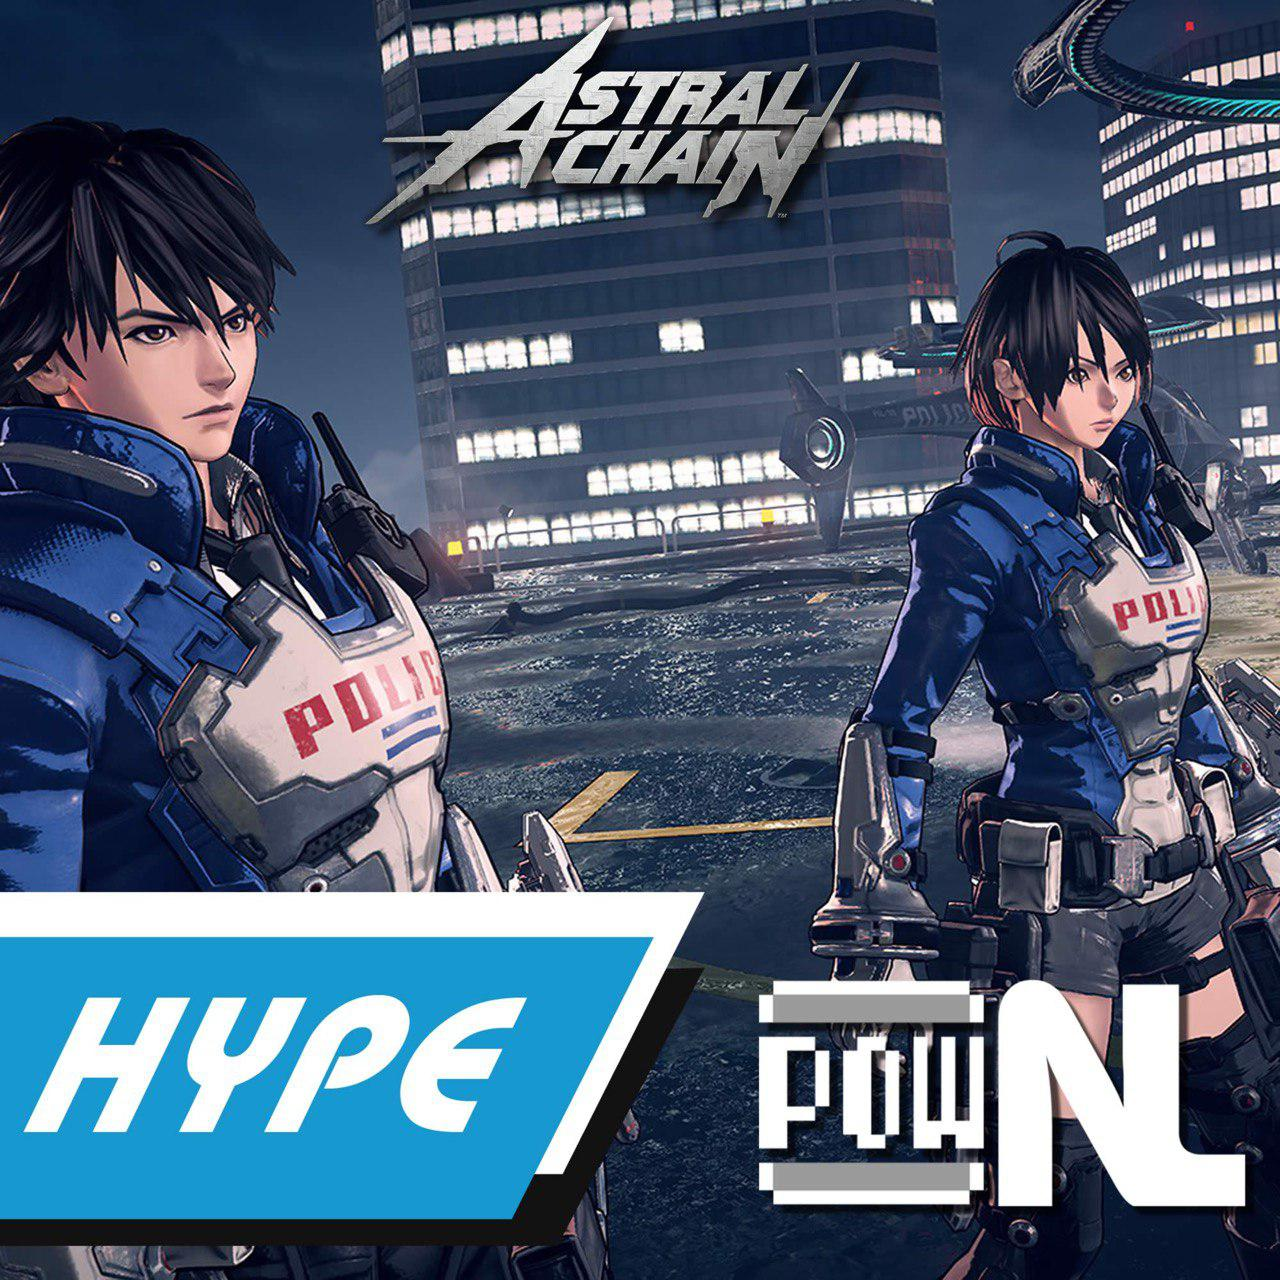 HYPE #01 – Astral Chain